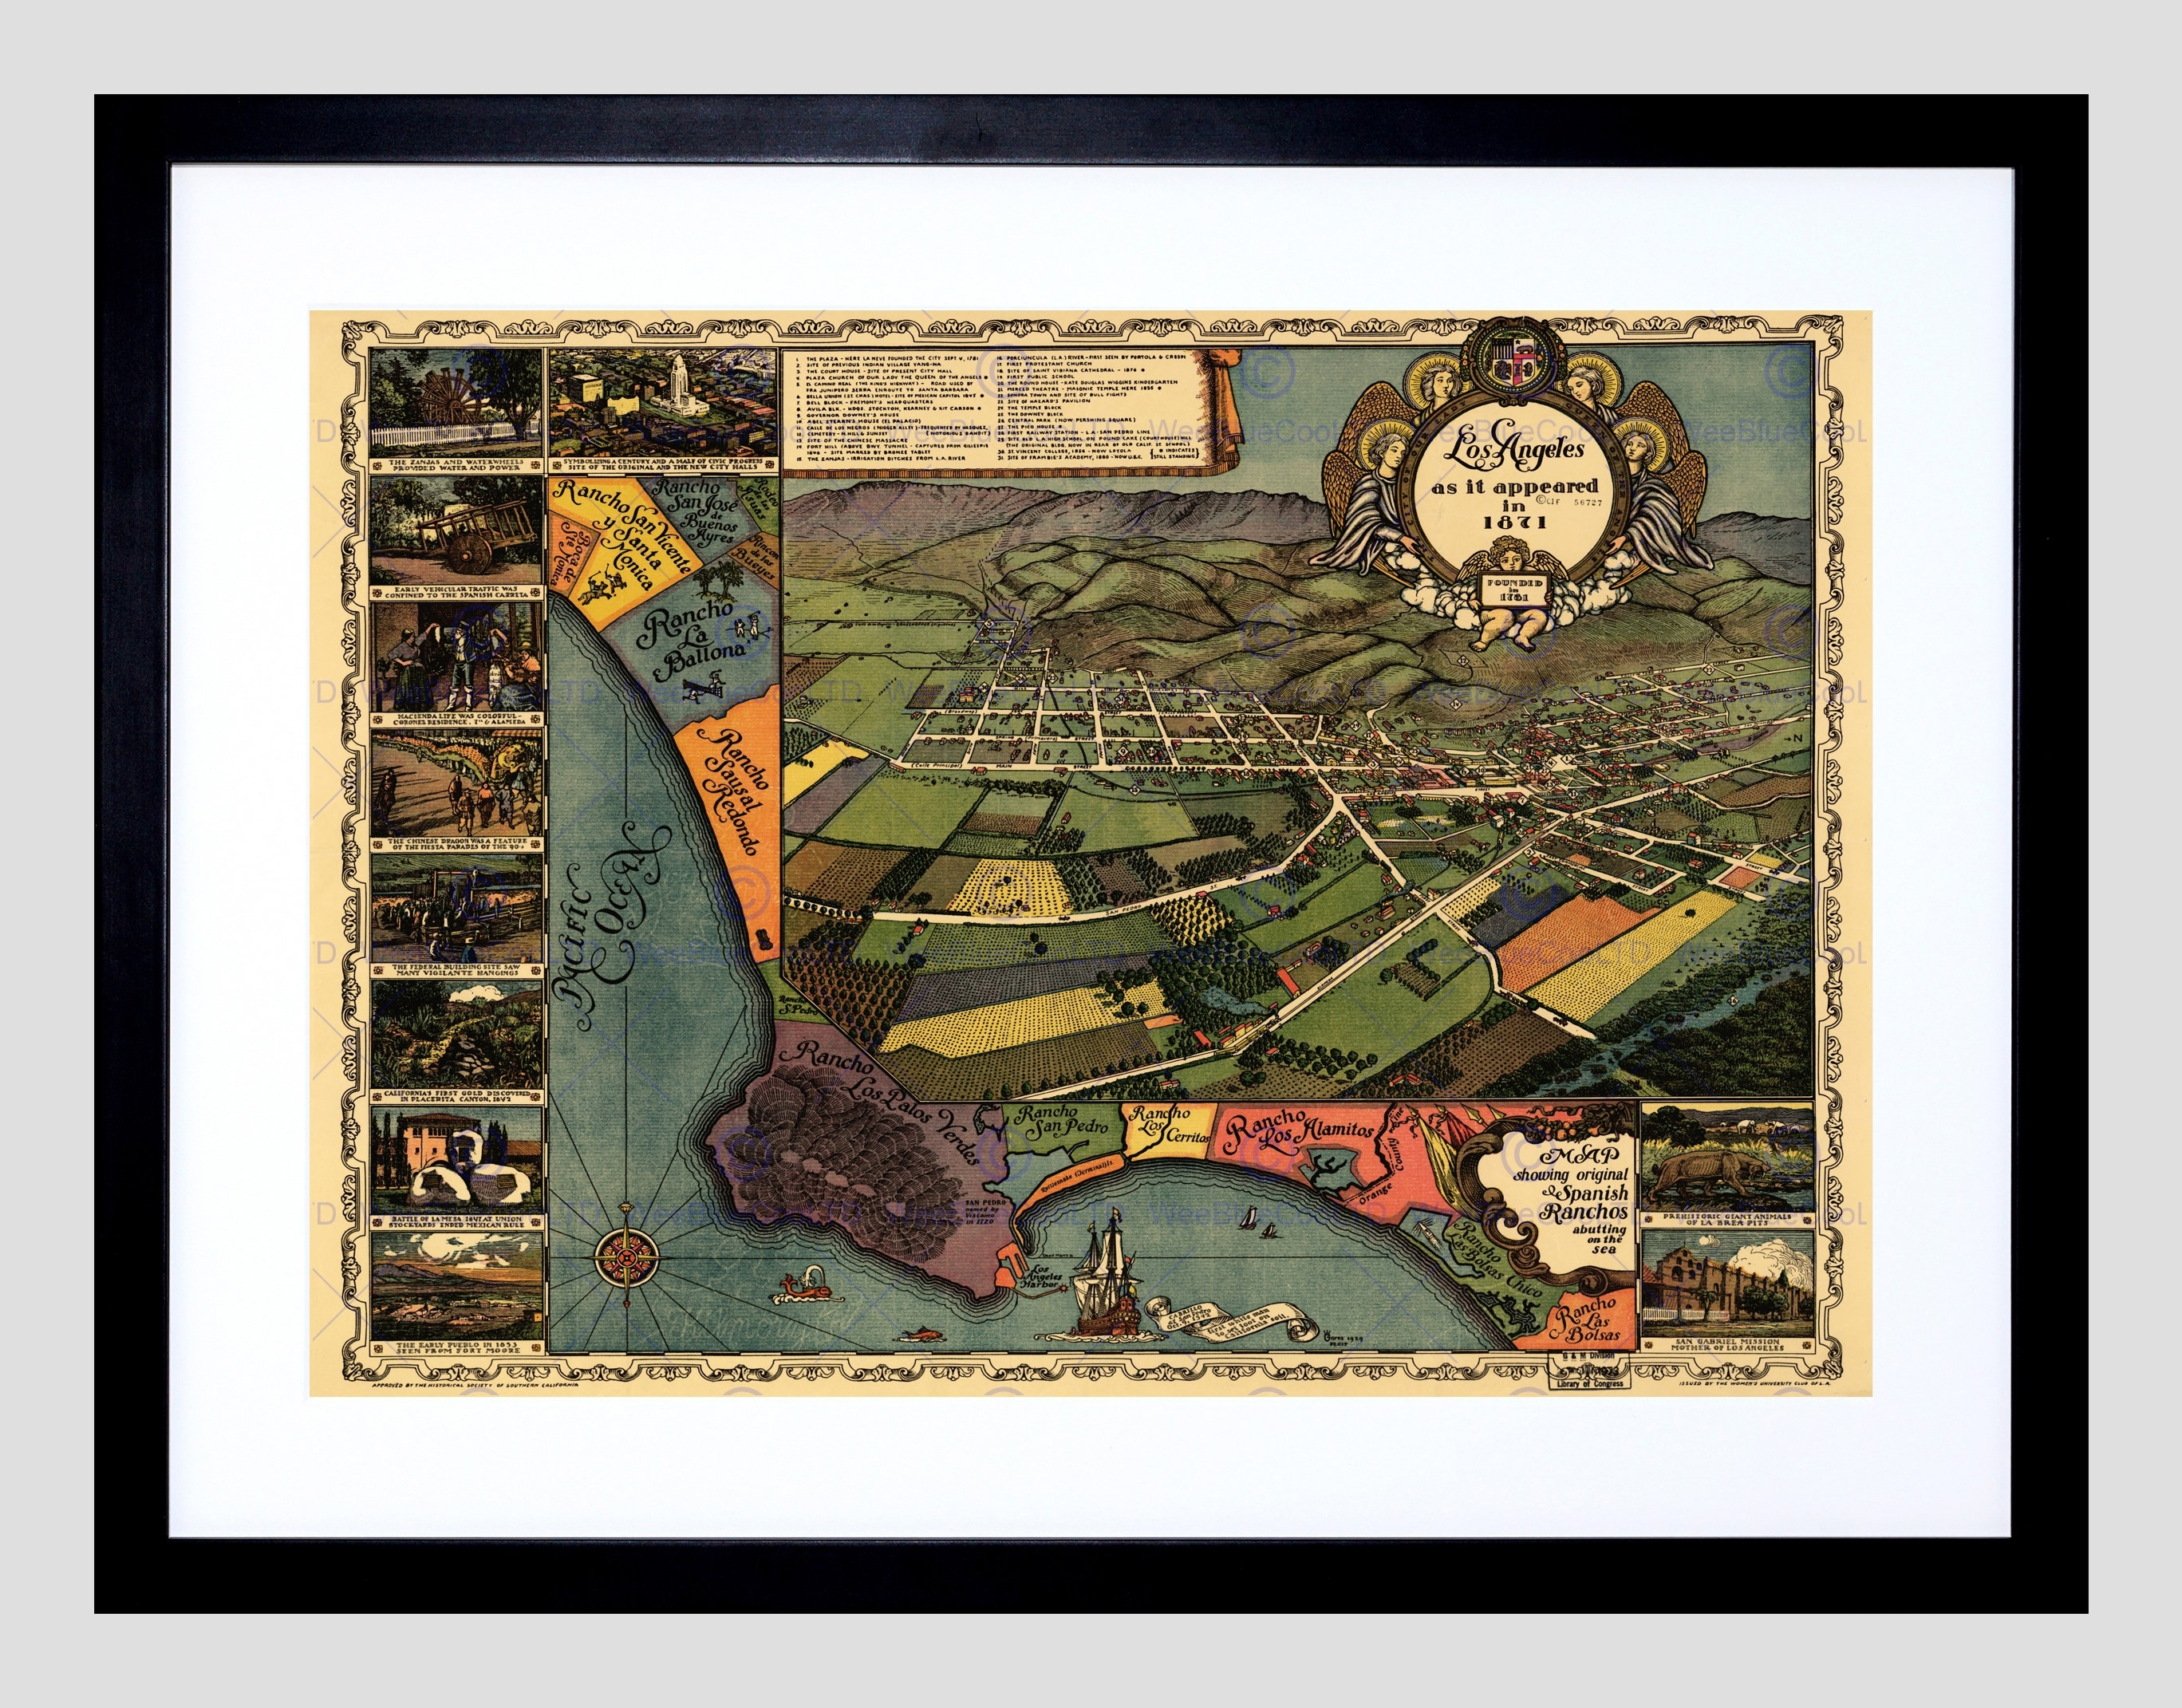 Map Los Angeles 1871 Vintage Framed Art Print Poster F12x10075 | Ebay Inside 2018 Los Angeles Framed Art Prints (View 4 of 15)